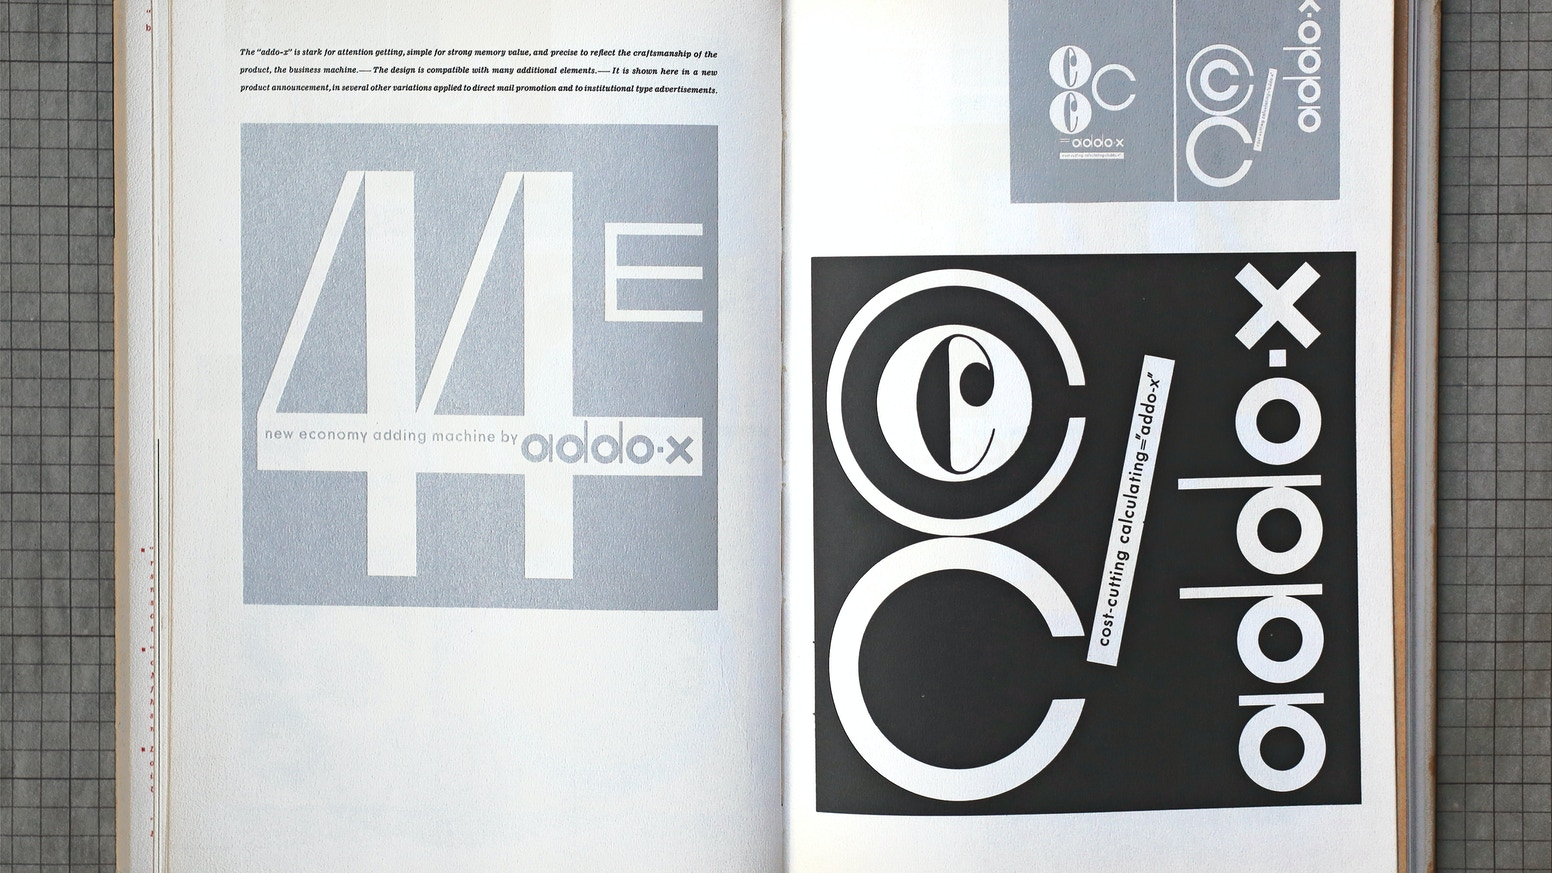 Facsimile reprint of an iconic 1961 book by modernist graphic designer and pioneer of information design Ladislav Sutnar